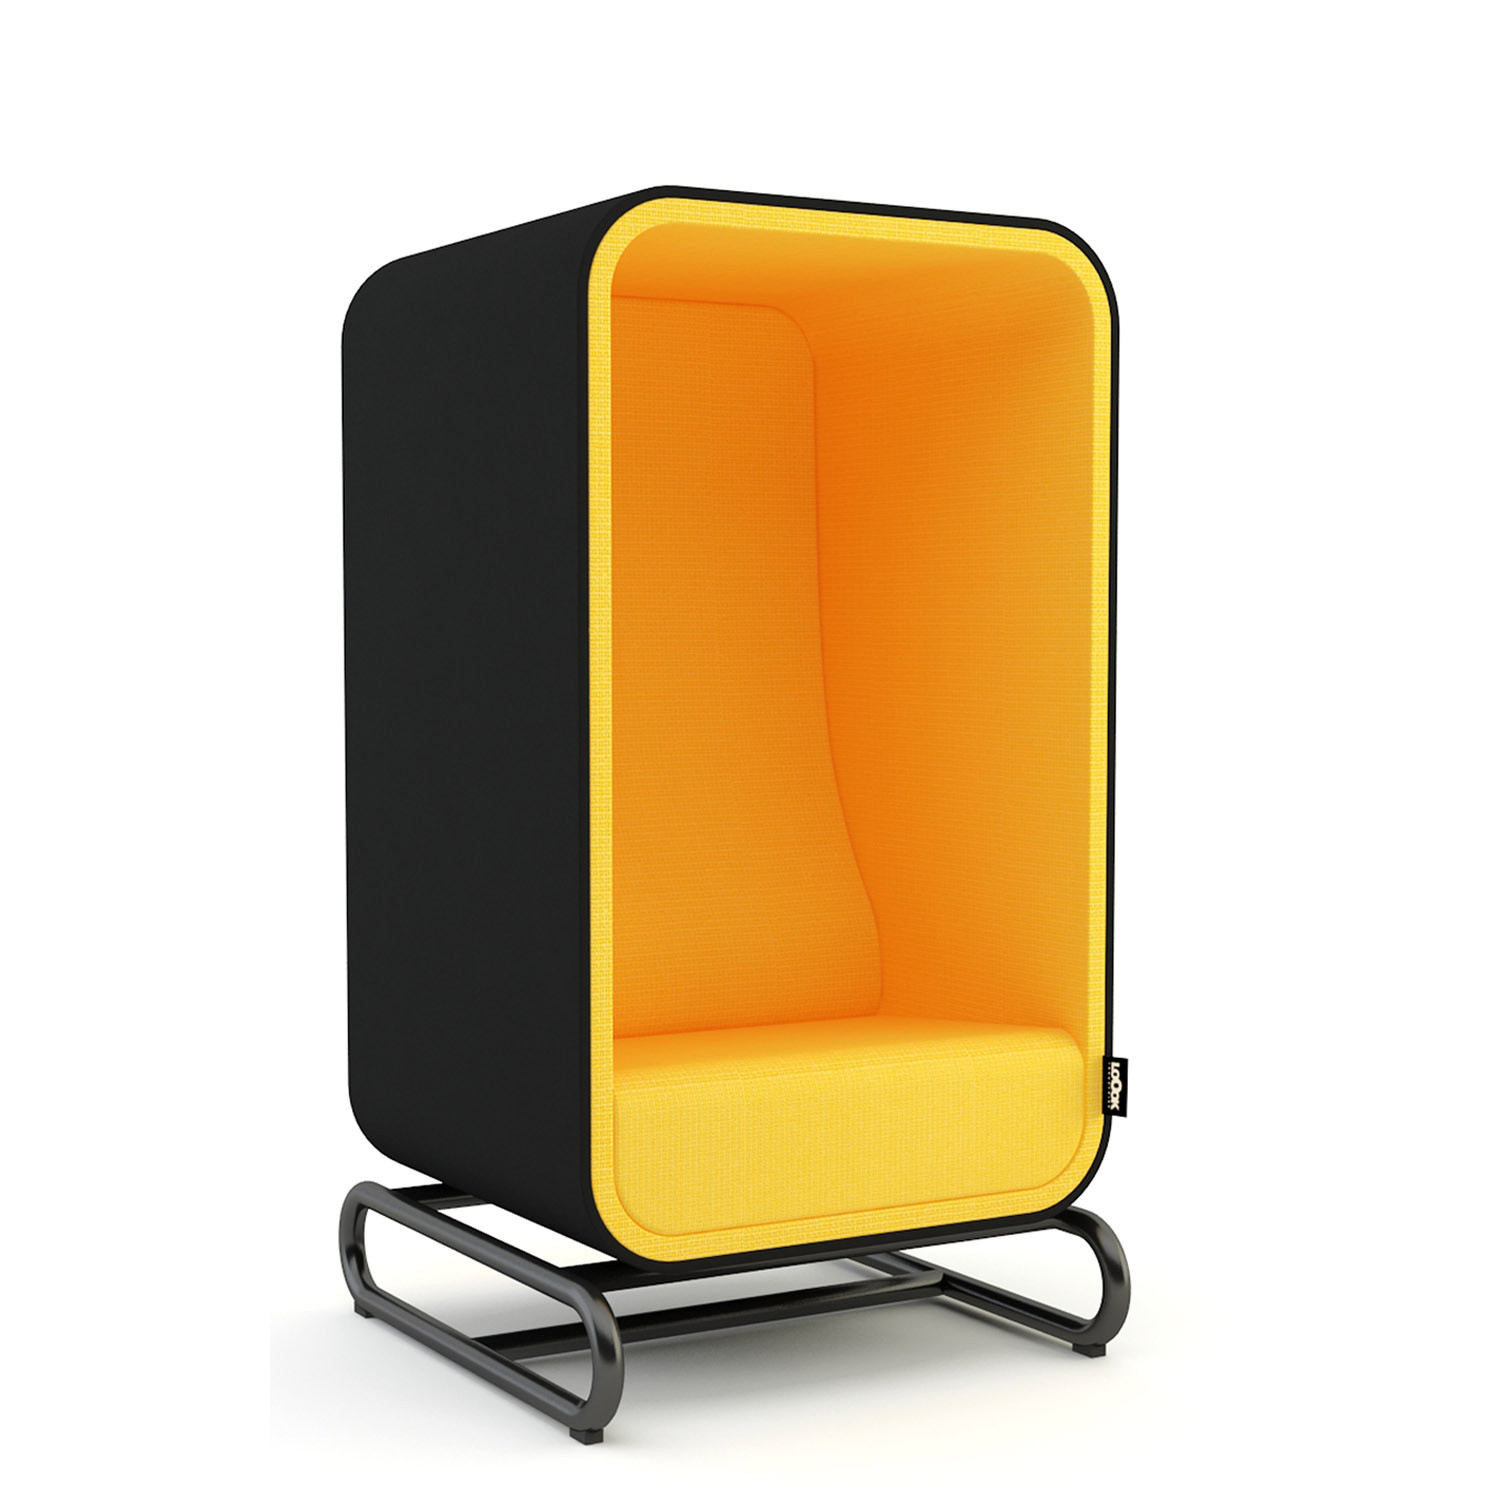 The Box Lounger Private High Back Armchairs Apres